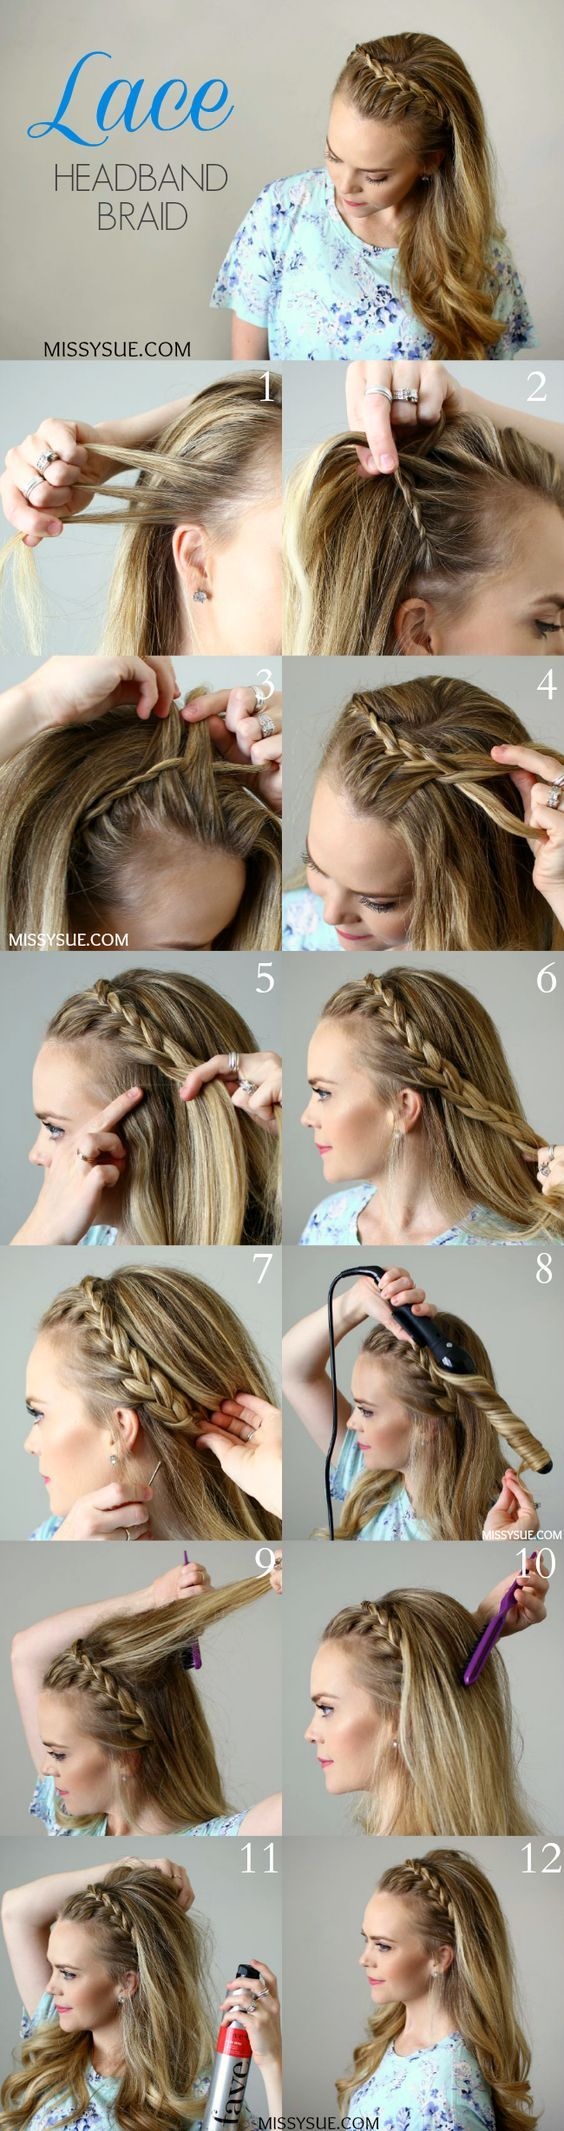 20 Quick Hairstyles You Can Do In Less Than Ten Minutes - Page 2 of 2 - Trend To Wear